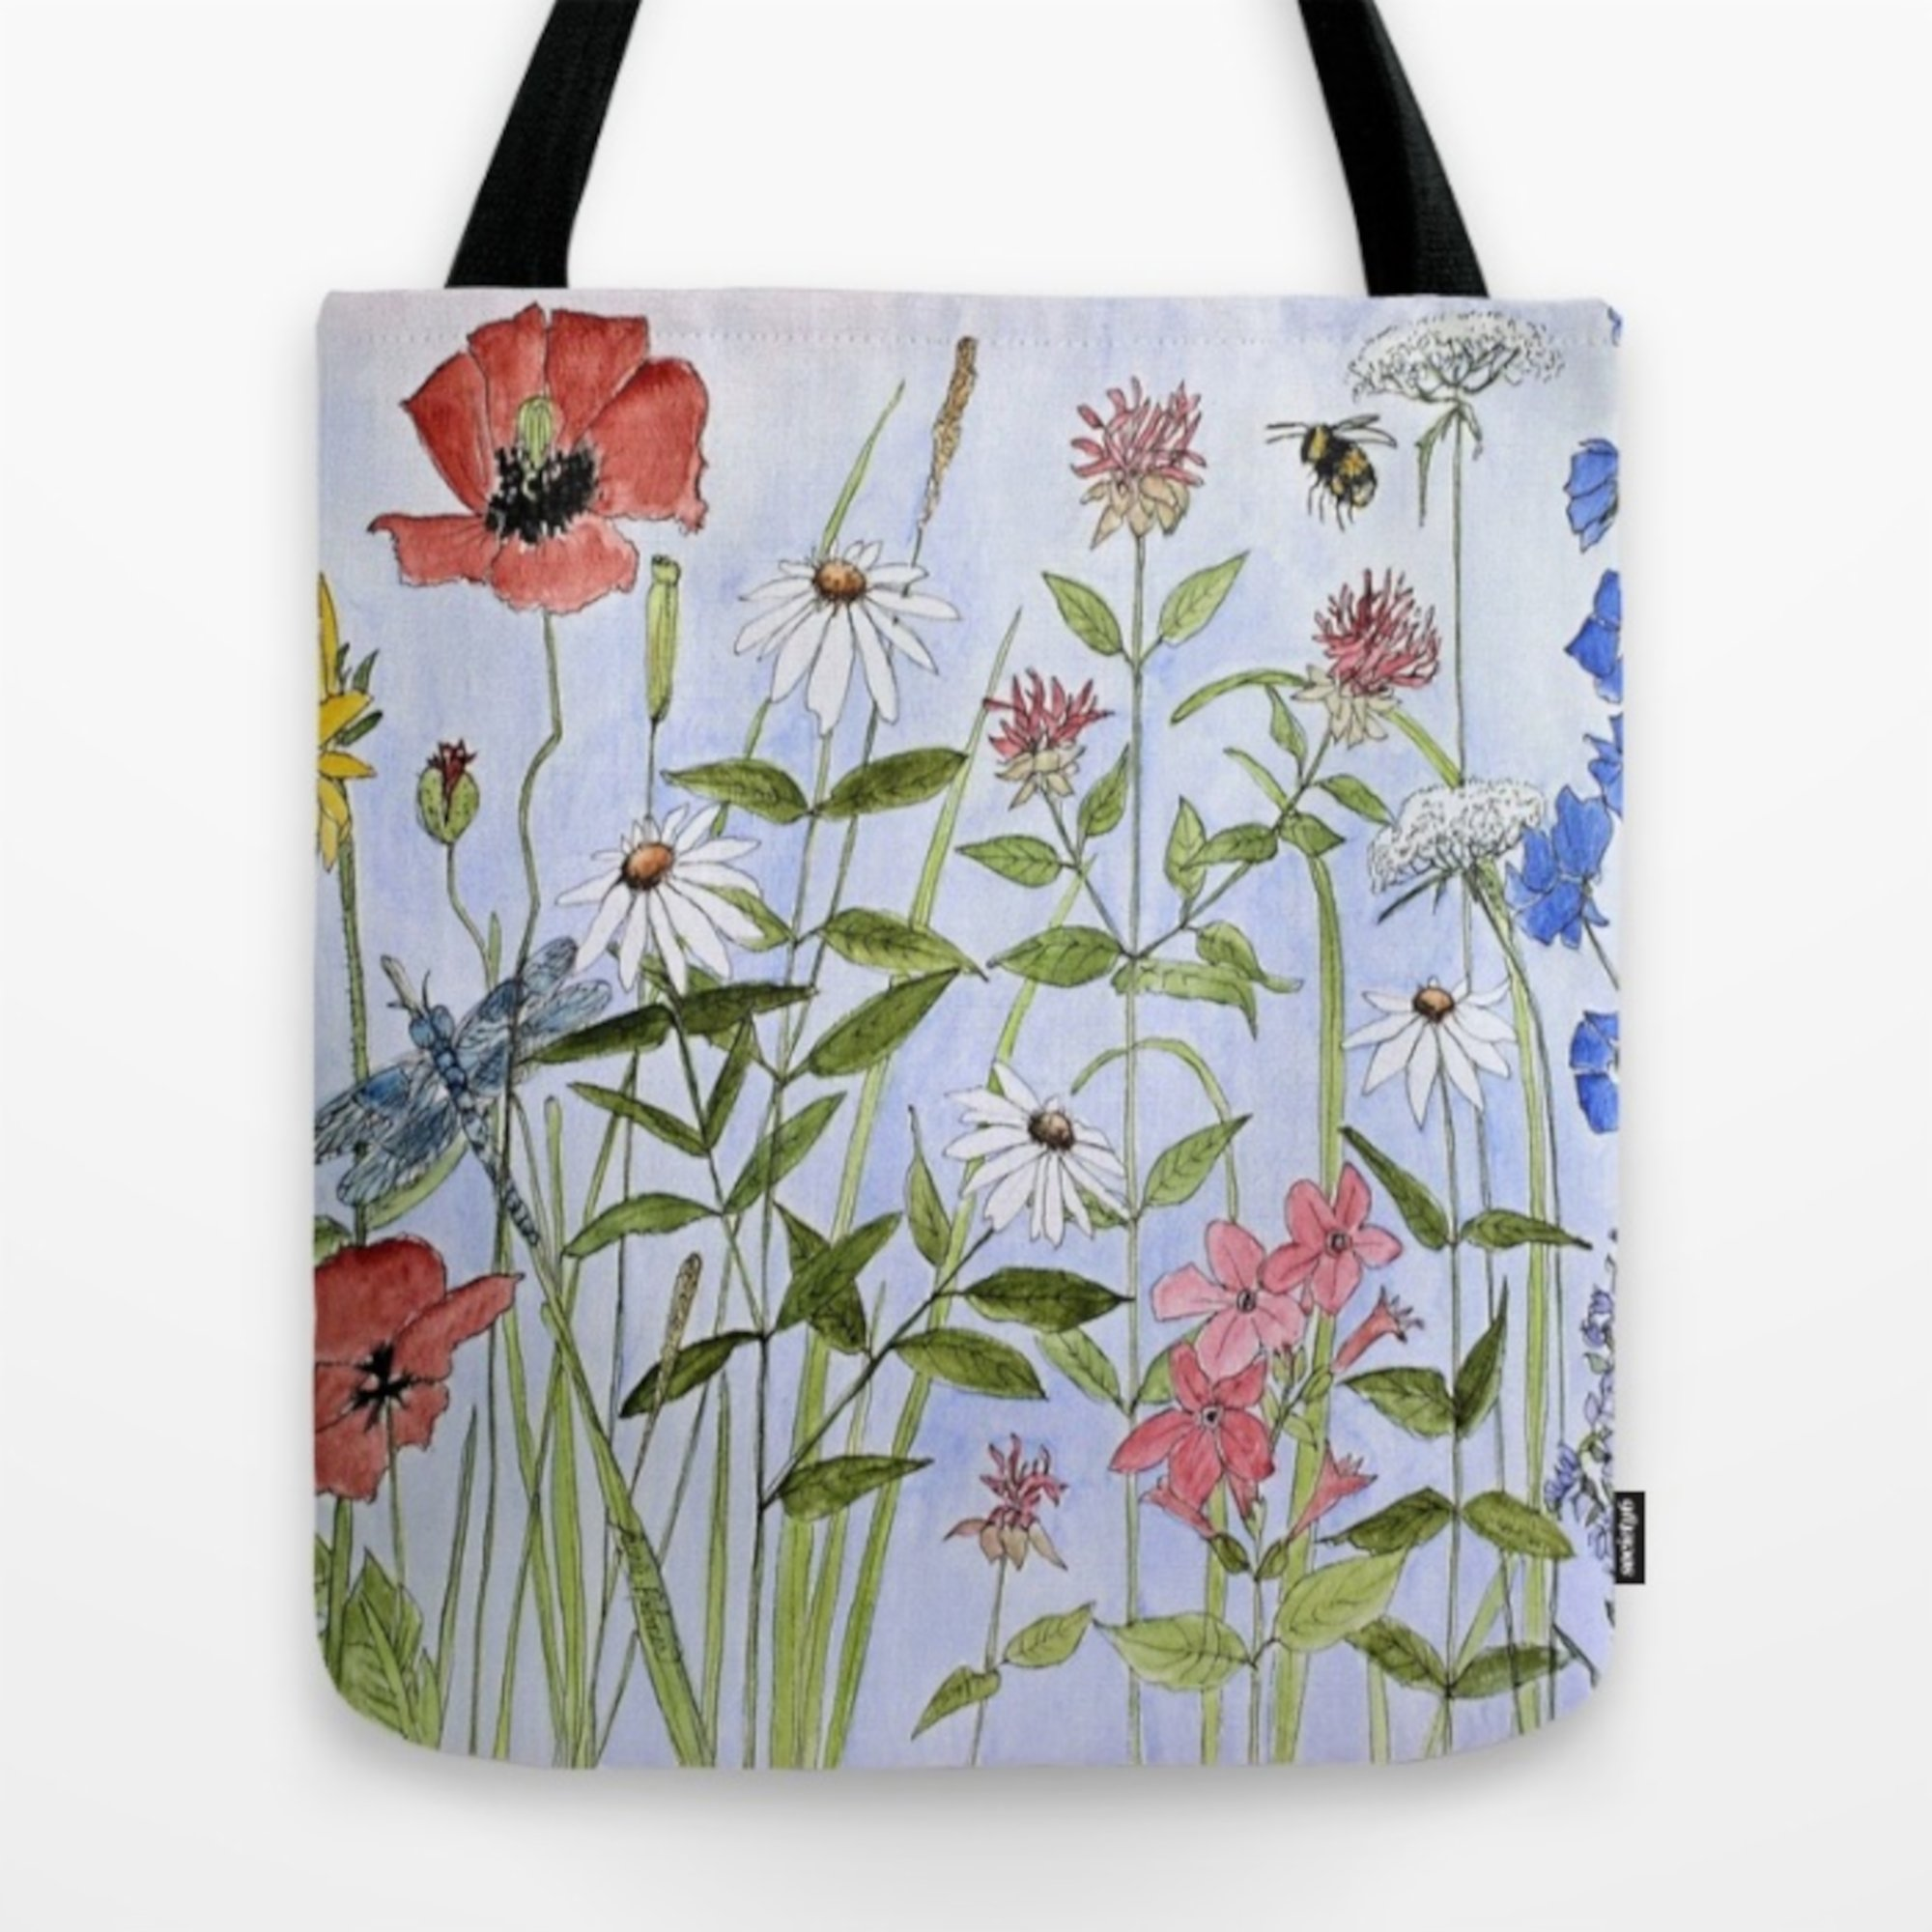 Contemporary watercolor flower bags